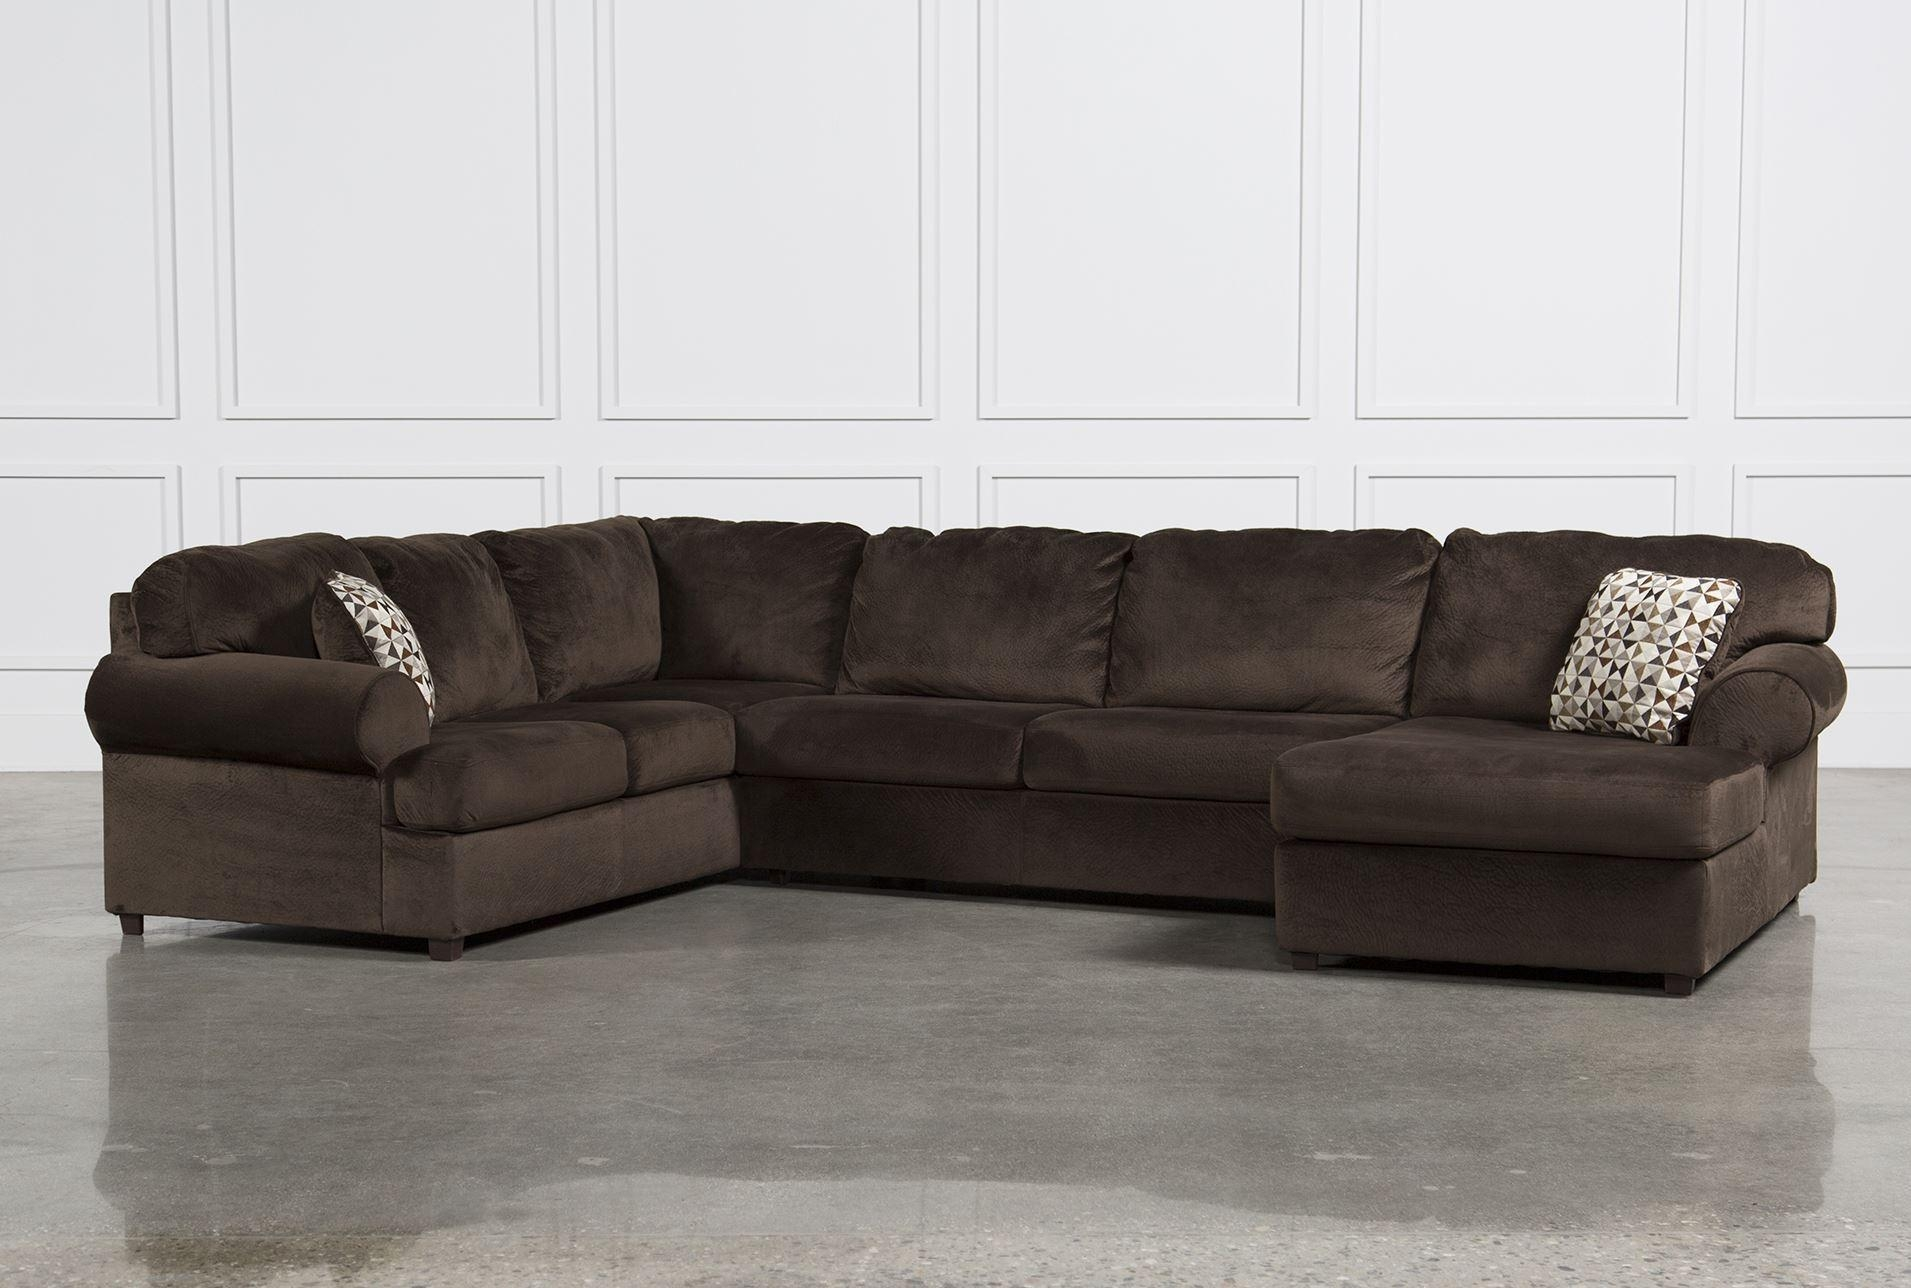 Astonishing Plush Sectional Sofas 80 For Your Sealy Posturepedic In Sealy Leather Sofas (View 15 of 20)